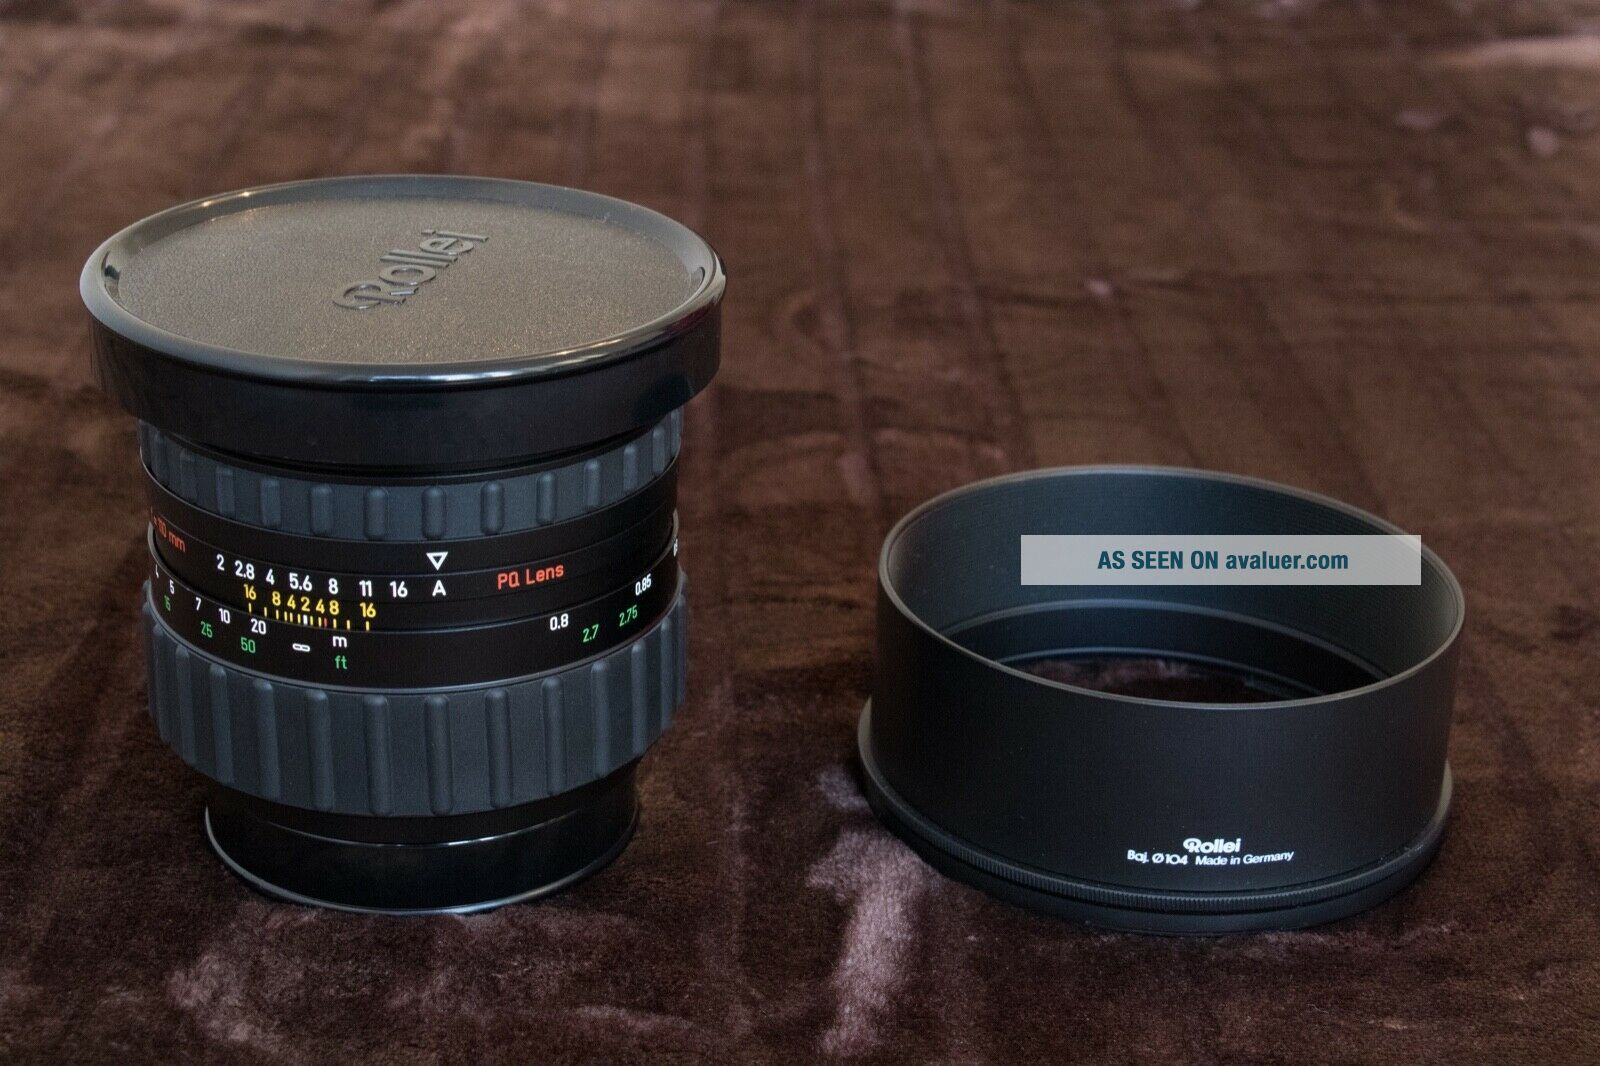 RARE Rollei Zeiss Planar 110mm f2 HFT PQ Lens & Both caps & Metal hood